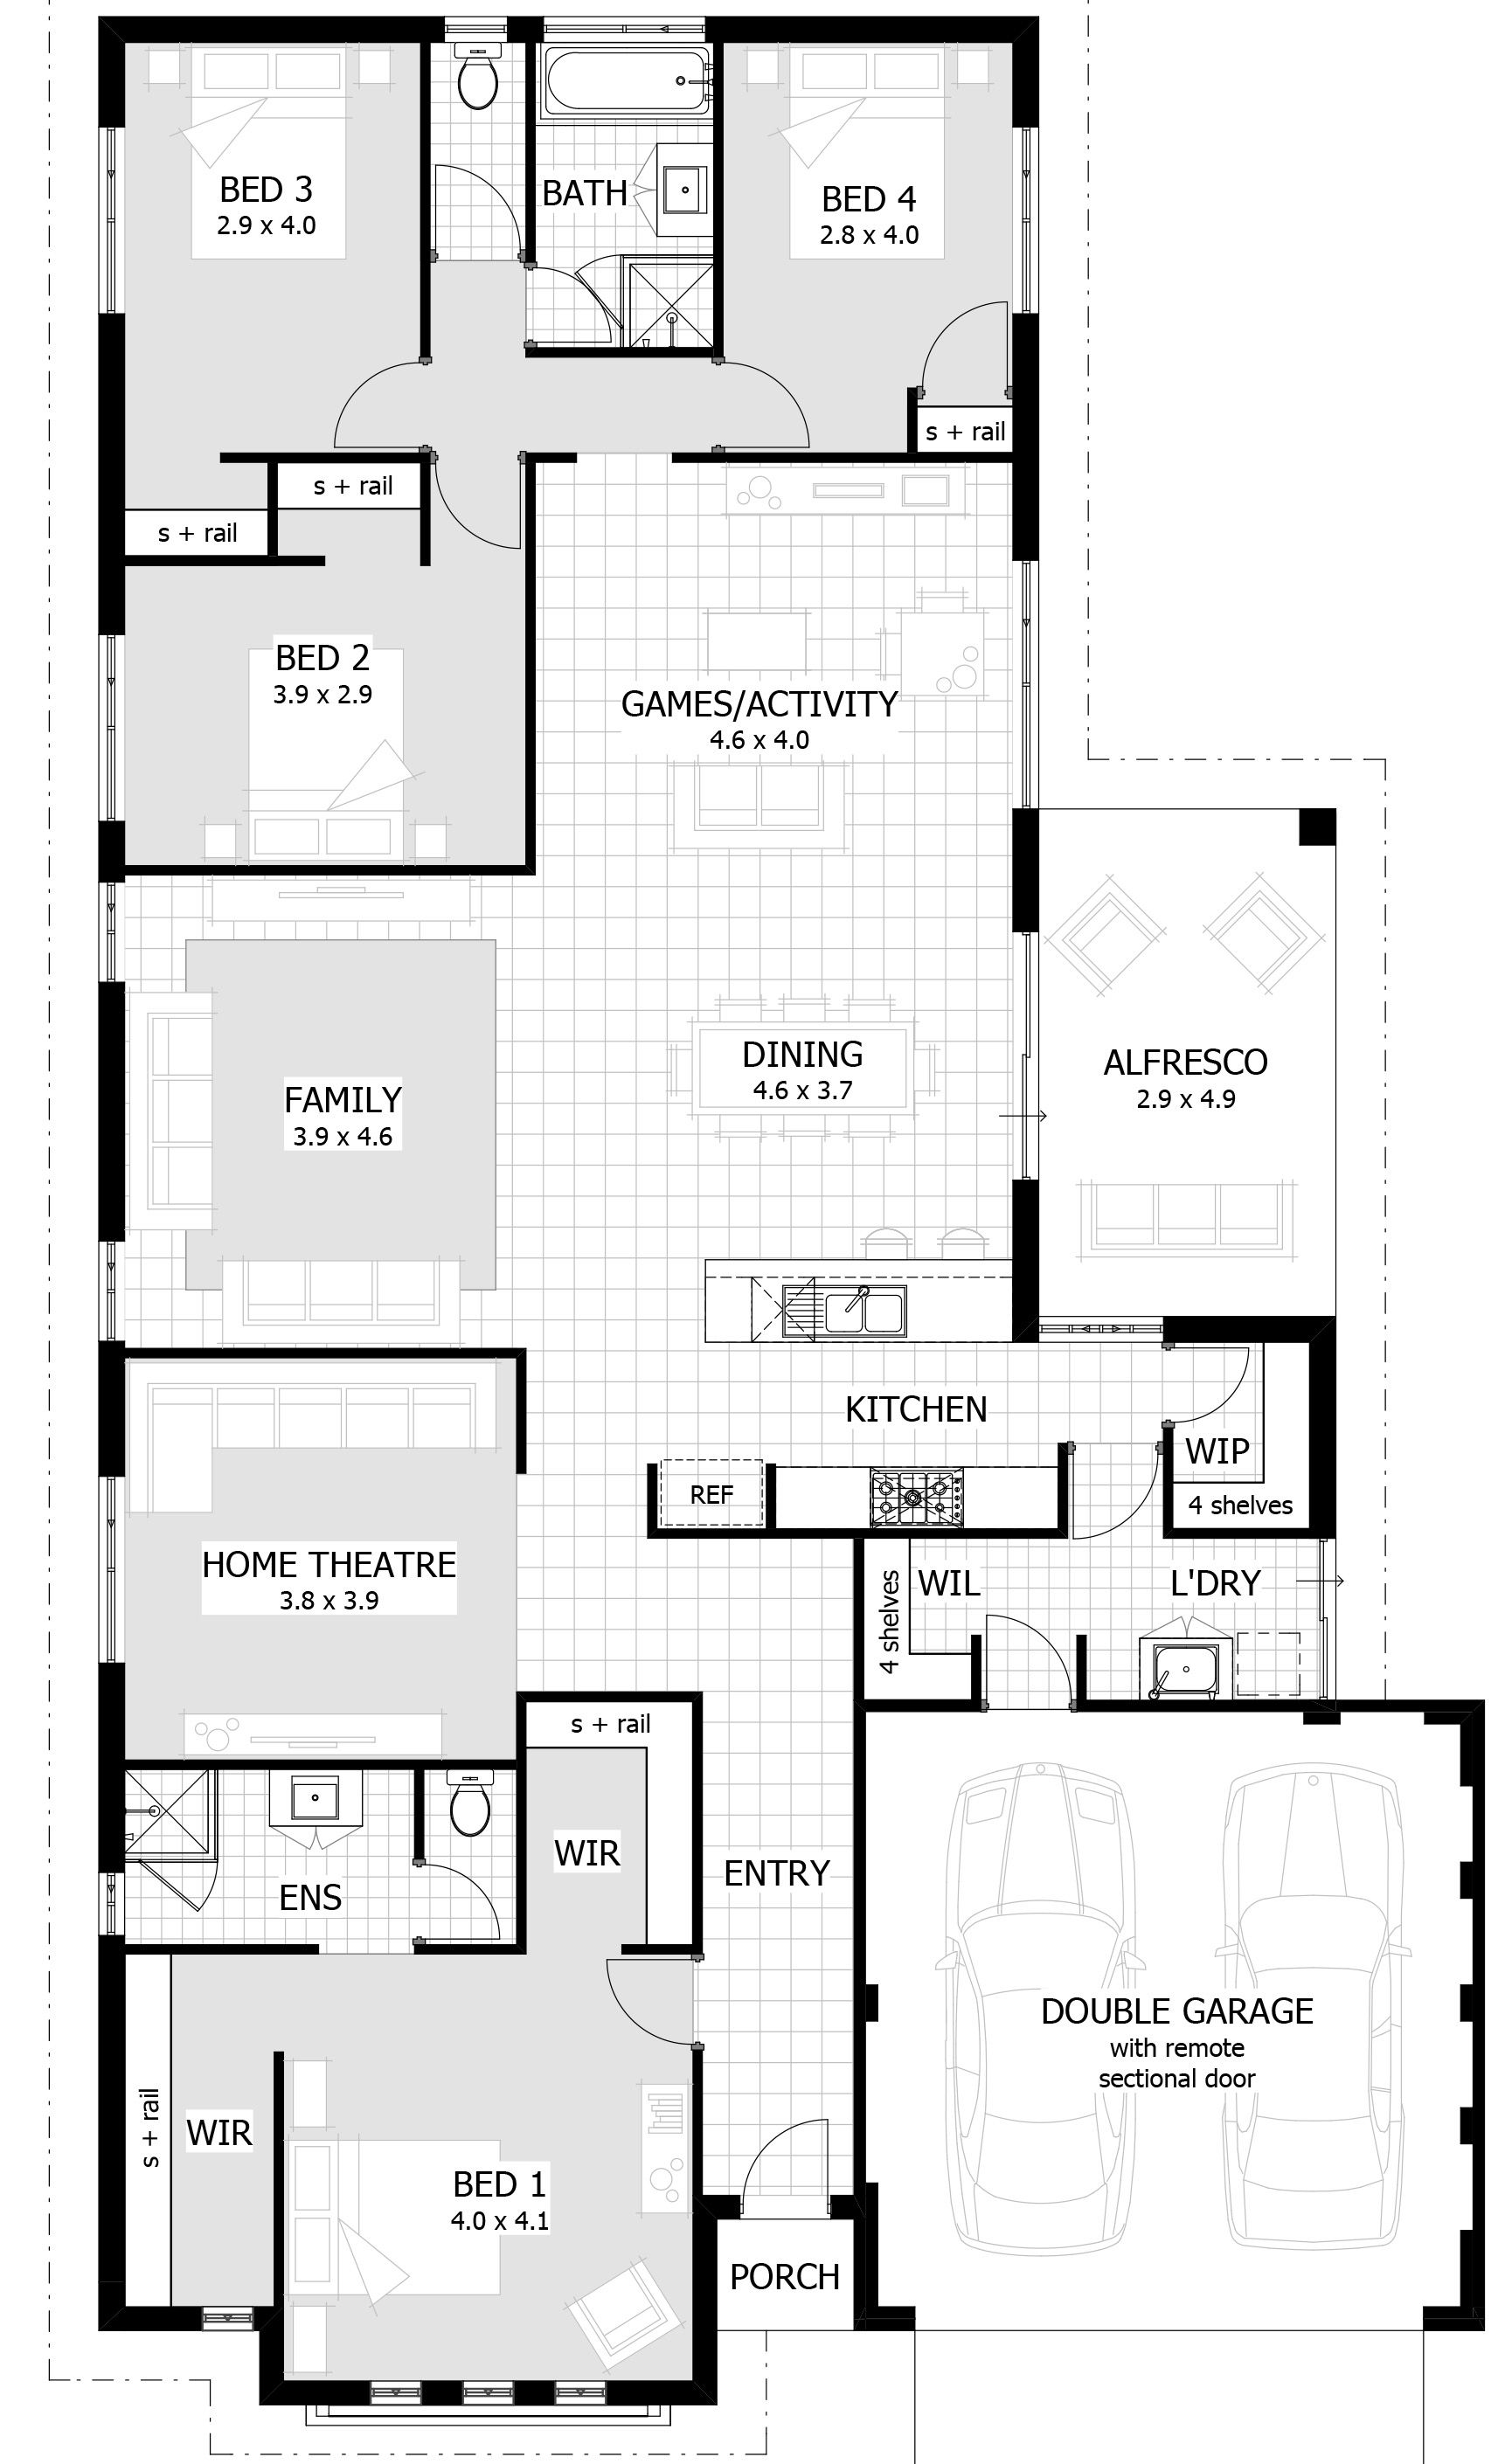 Home Designs With Activity Room Celebration Homes Bedroom House Plans 6 Bedroom House Plans